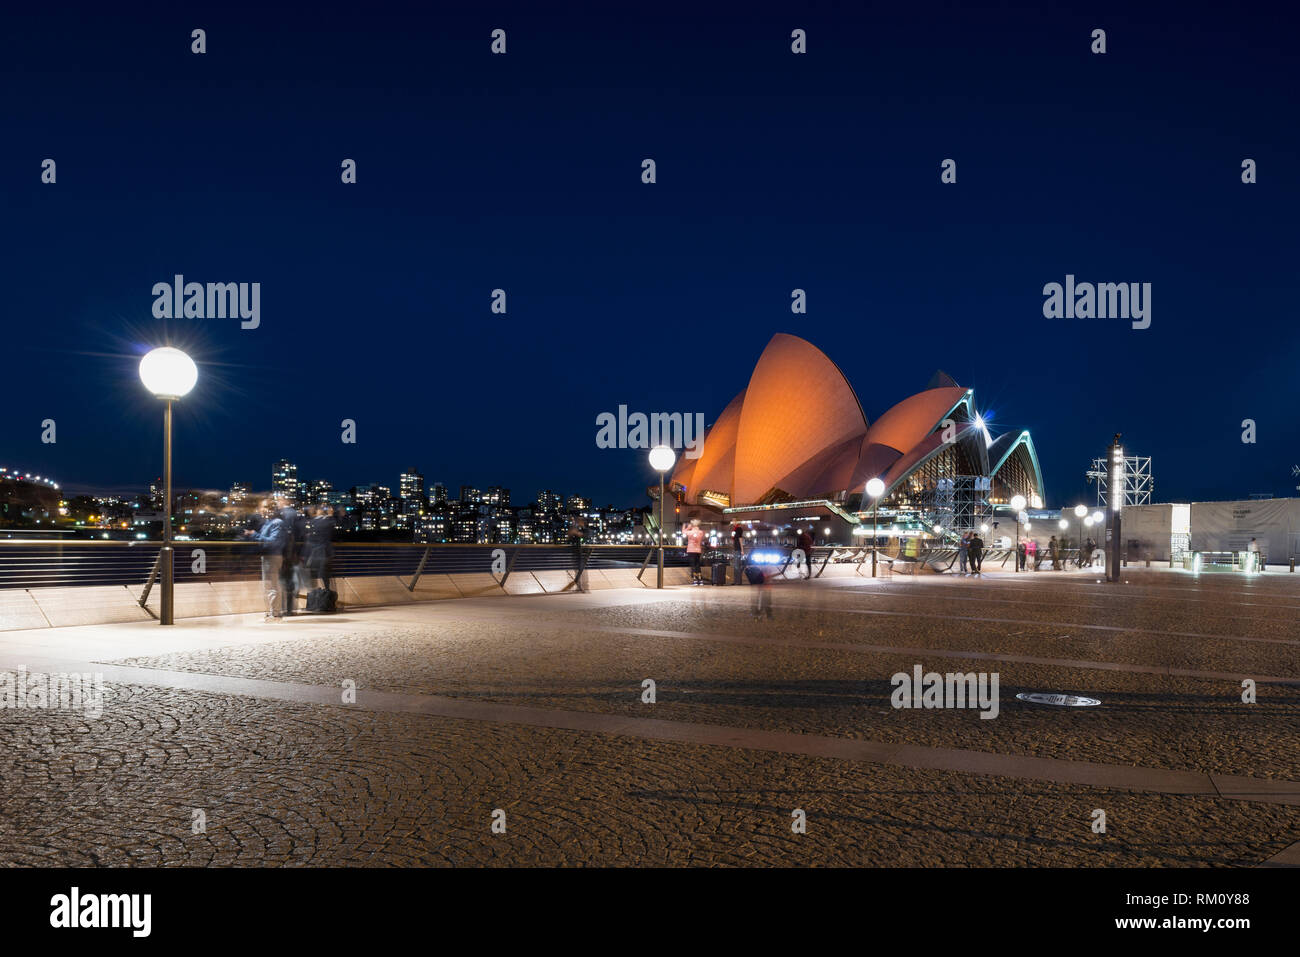 Sydney Opera house by night. Stock Photo